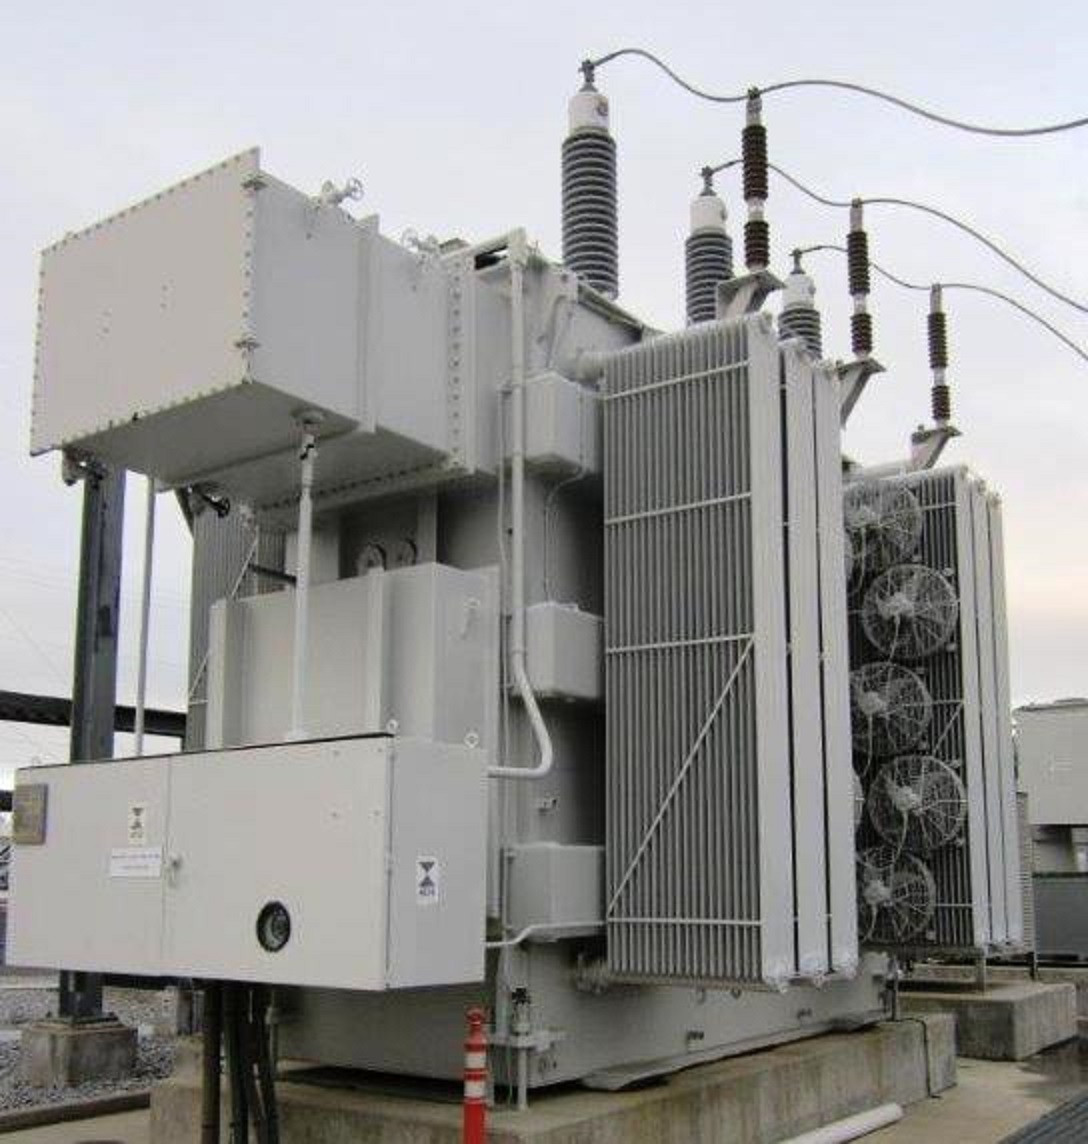 McGraw-Edison Substation Transformer with Load Tap Changing